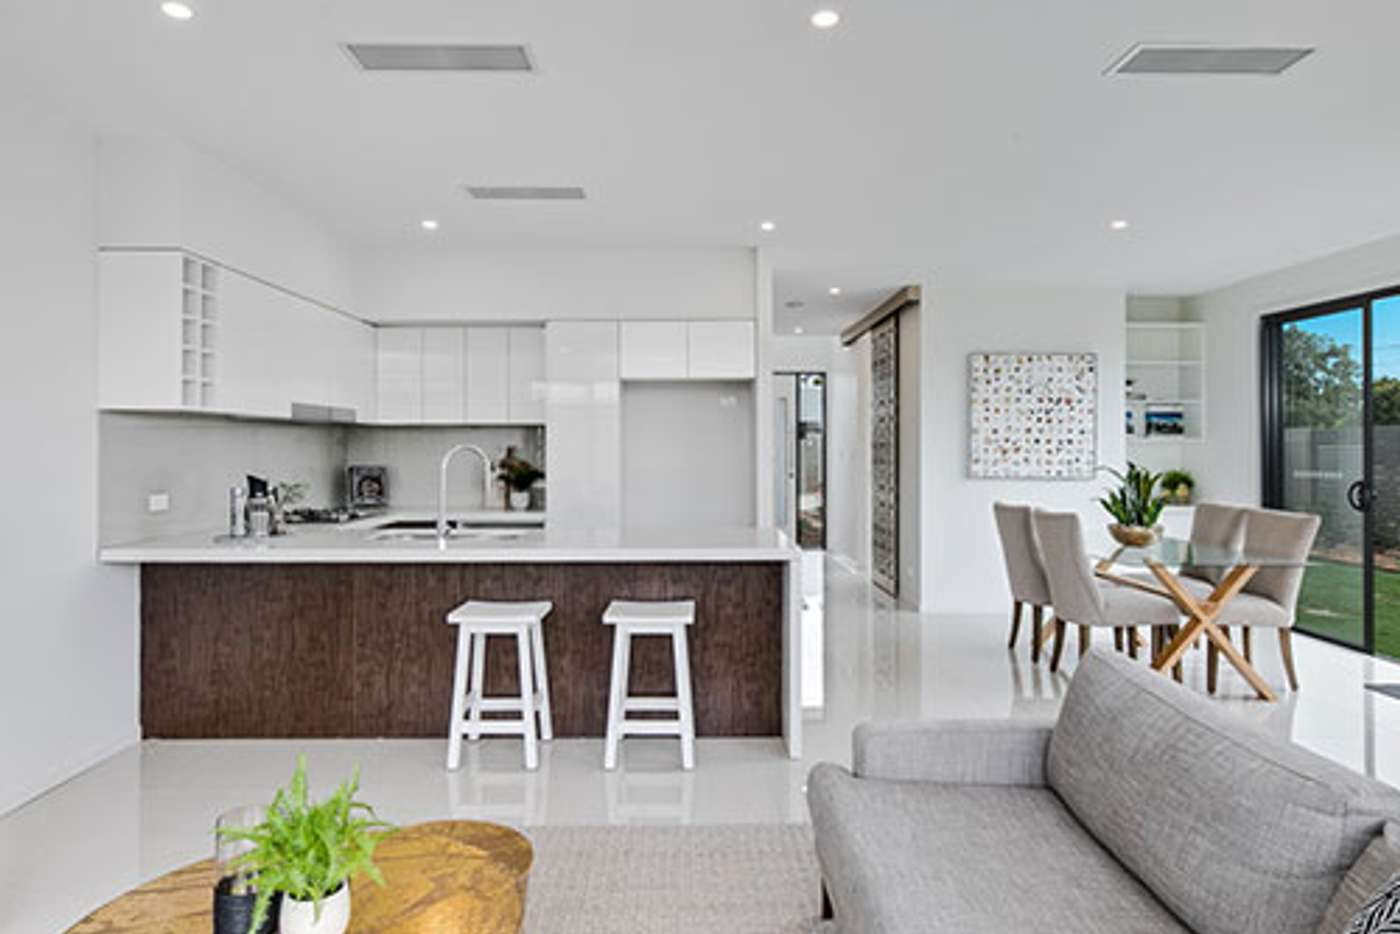 Seventh view of Homely apartment listing, 100 Dorsal Drive, Birkdale QLD 4159